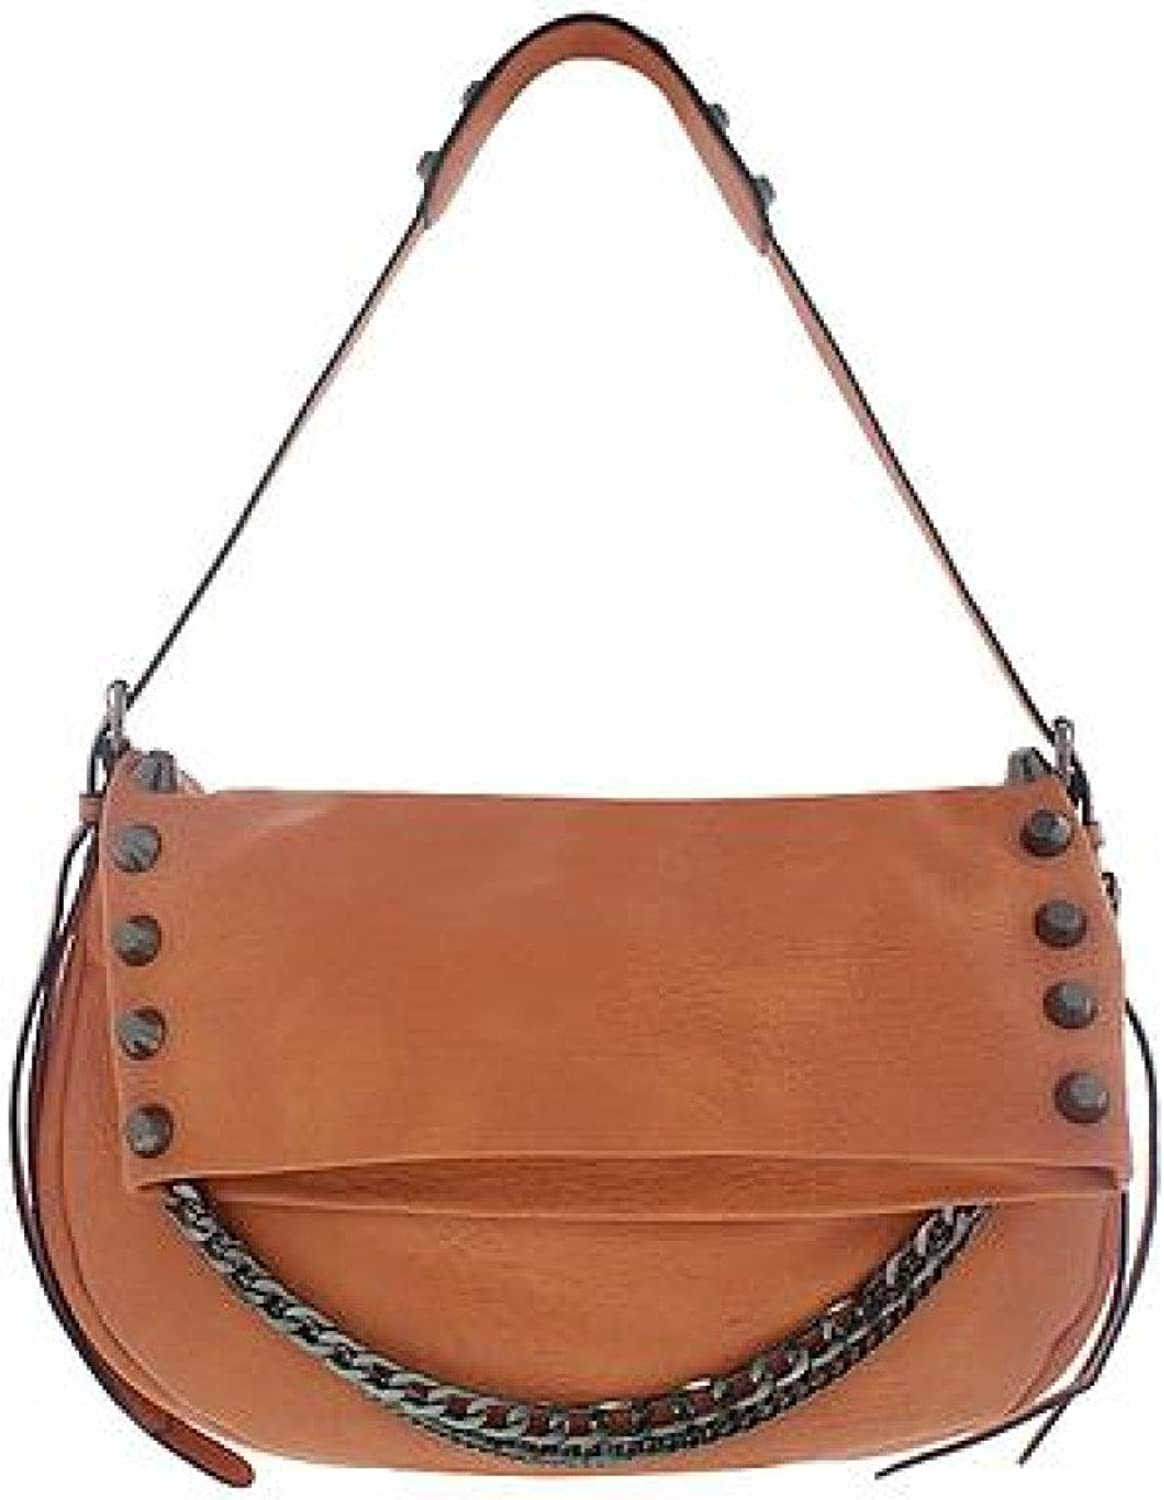 MELIE BIANCO Tessa Crossbody Satchel with Metal Studs & Chain Detail